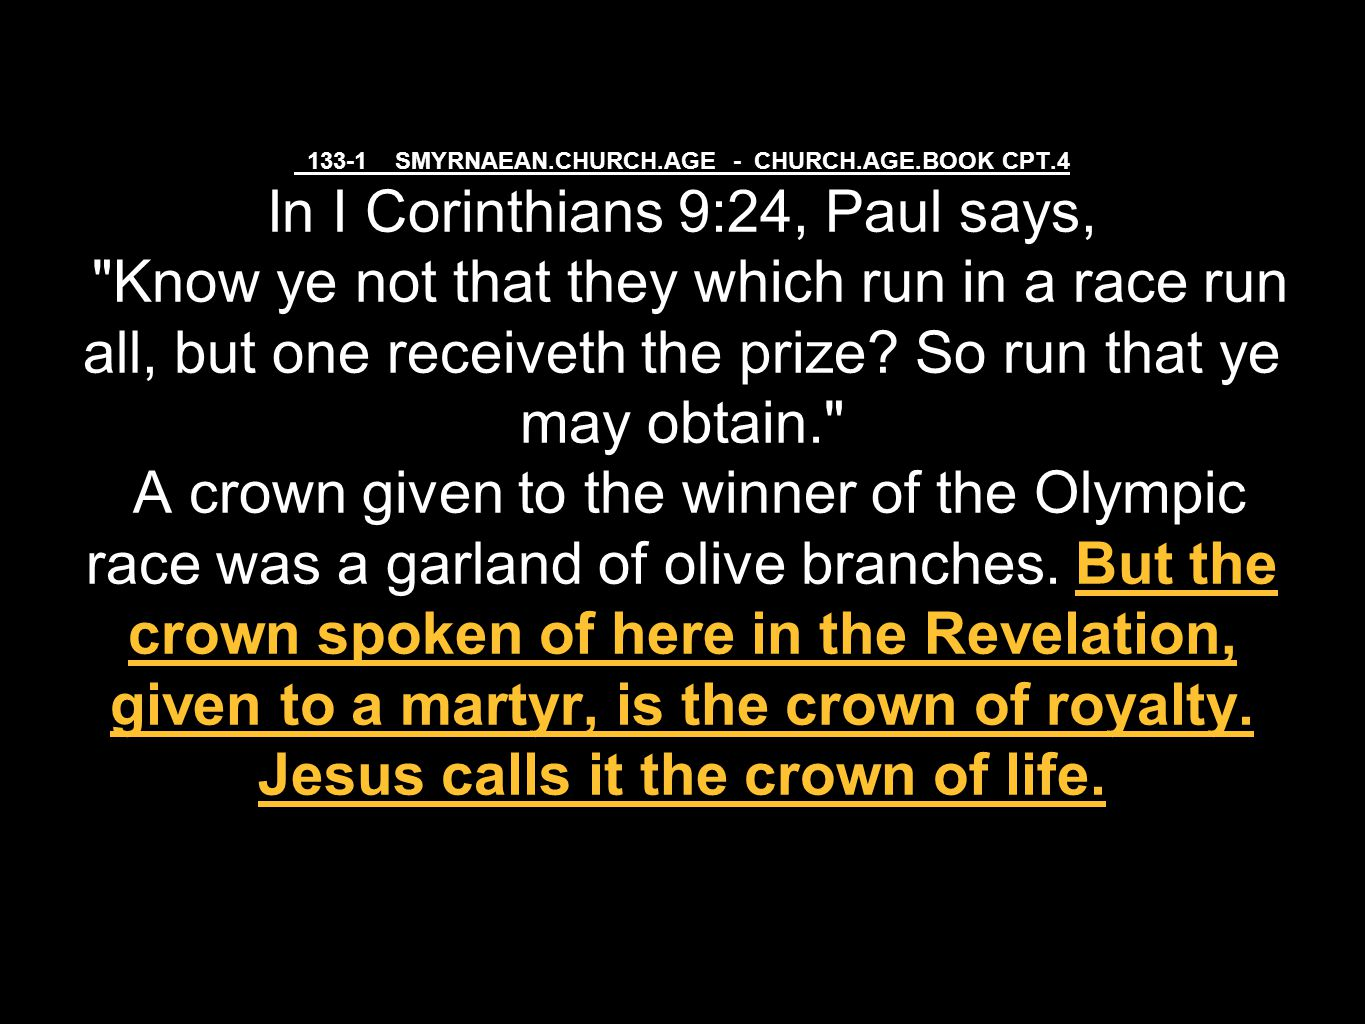 133-1 SMYRNAEAN.CHURCH.AGE - CHURCH.AGE.BOOK CPT.4 In I Corinthians 9:24, Paul says, Know ye not that they which run in a race run all, but one receiveth the prize.